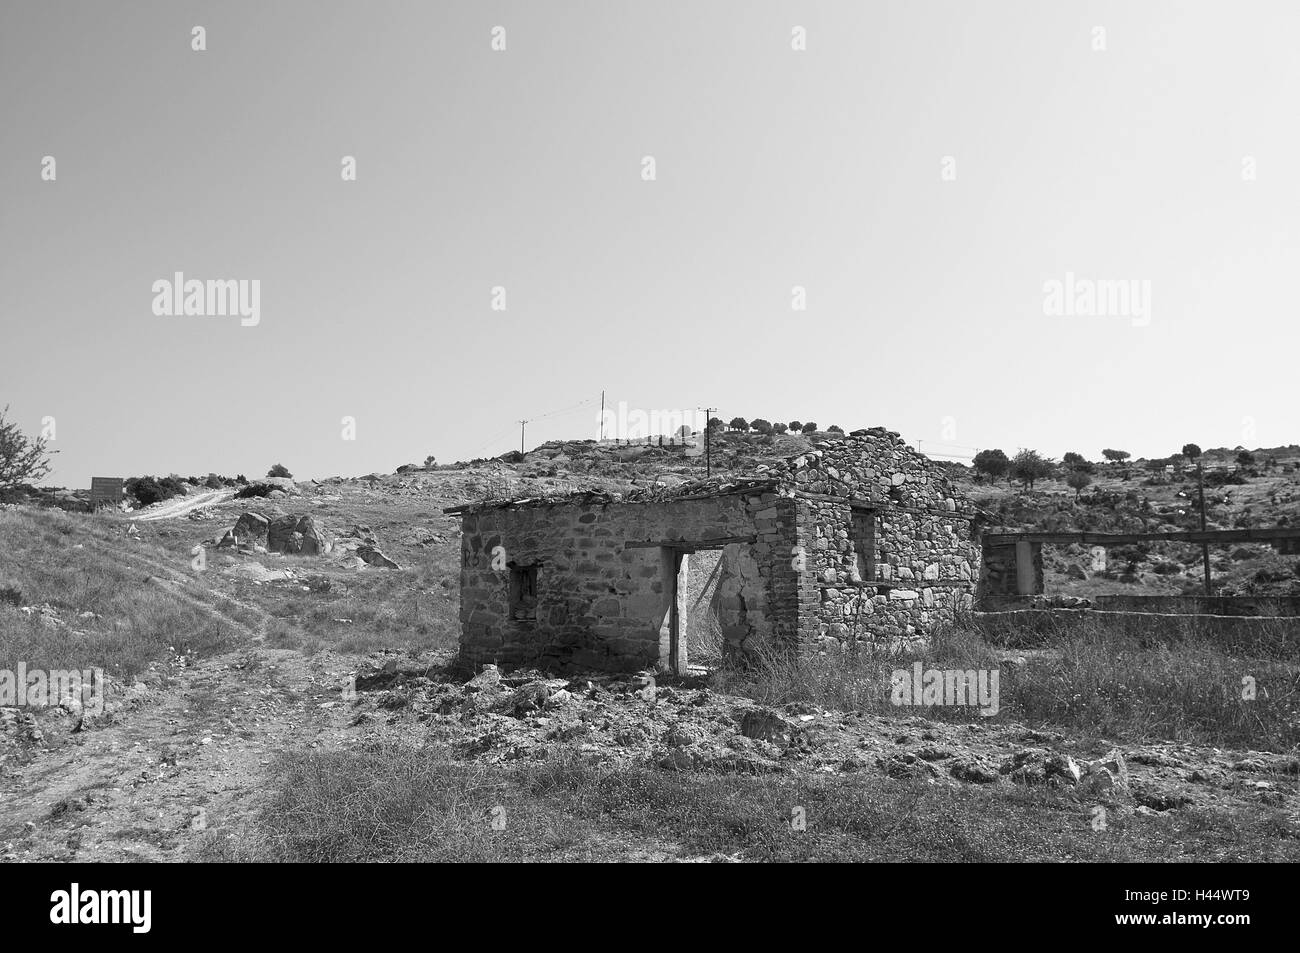 Paysages, ruines, b/w, , Photo Stock